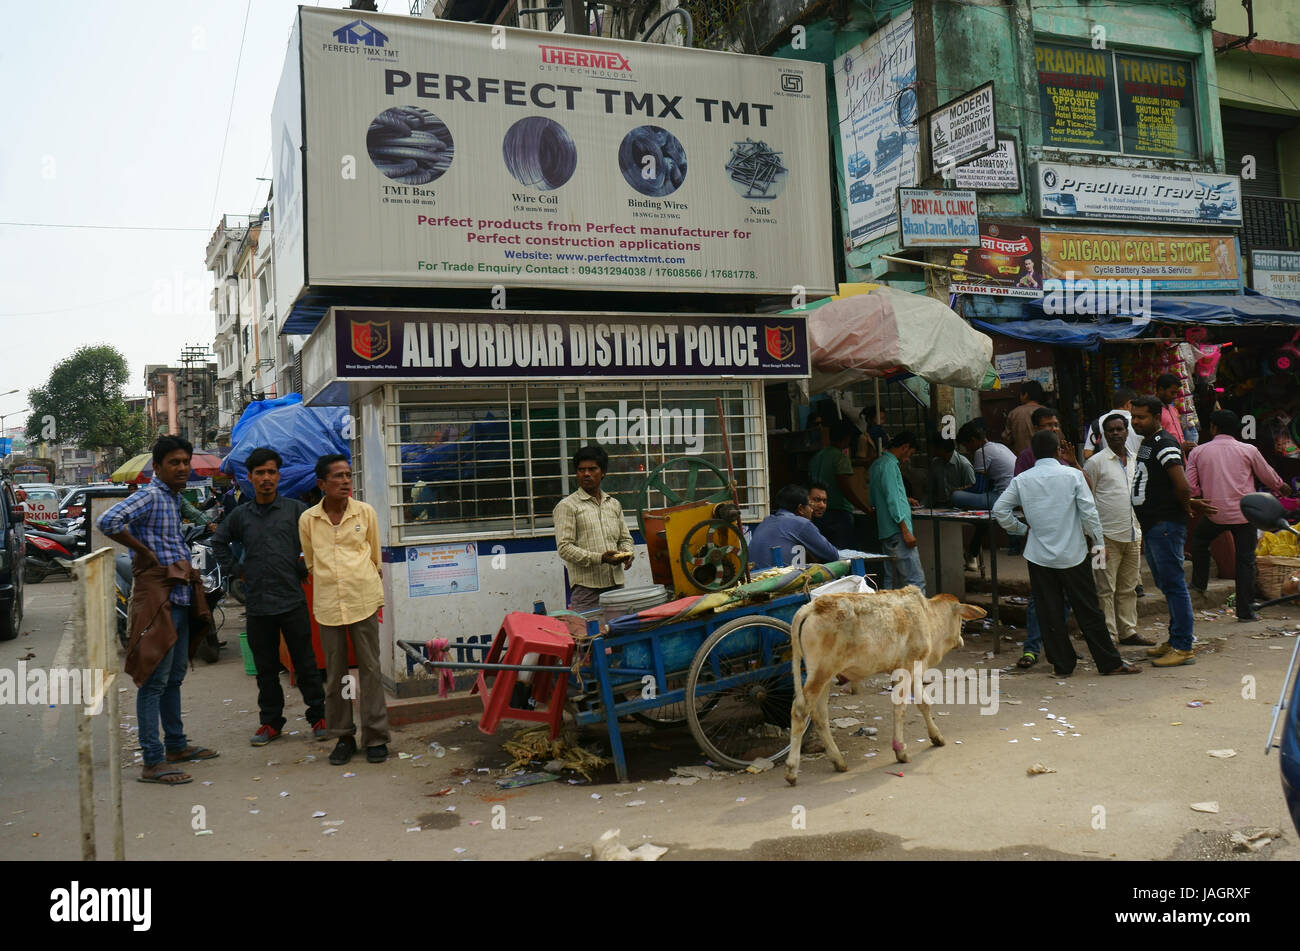 Street in Phuentsholing with street vendors ,shops, stores, cow, West Bengal, India - Stock Image